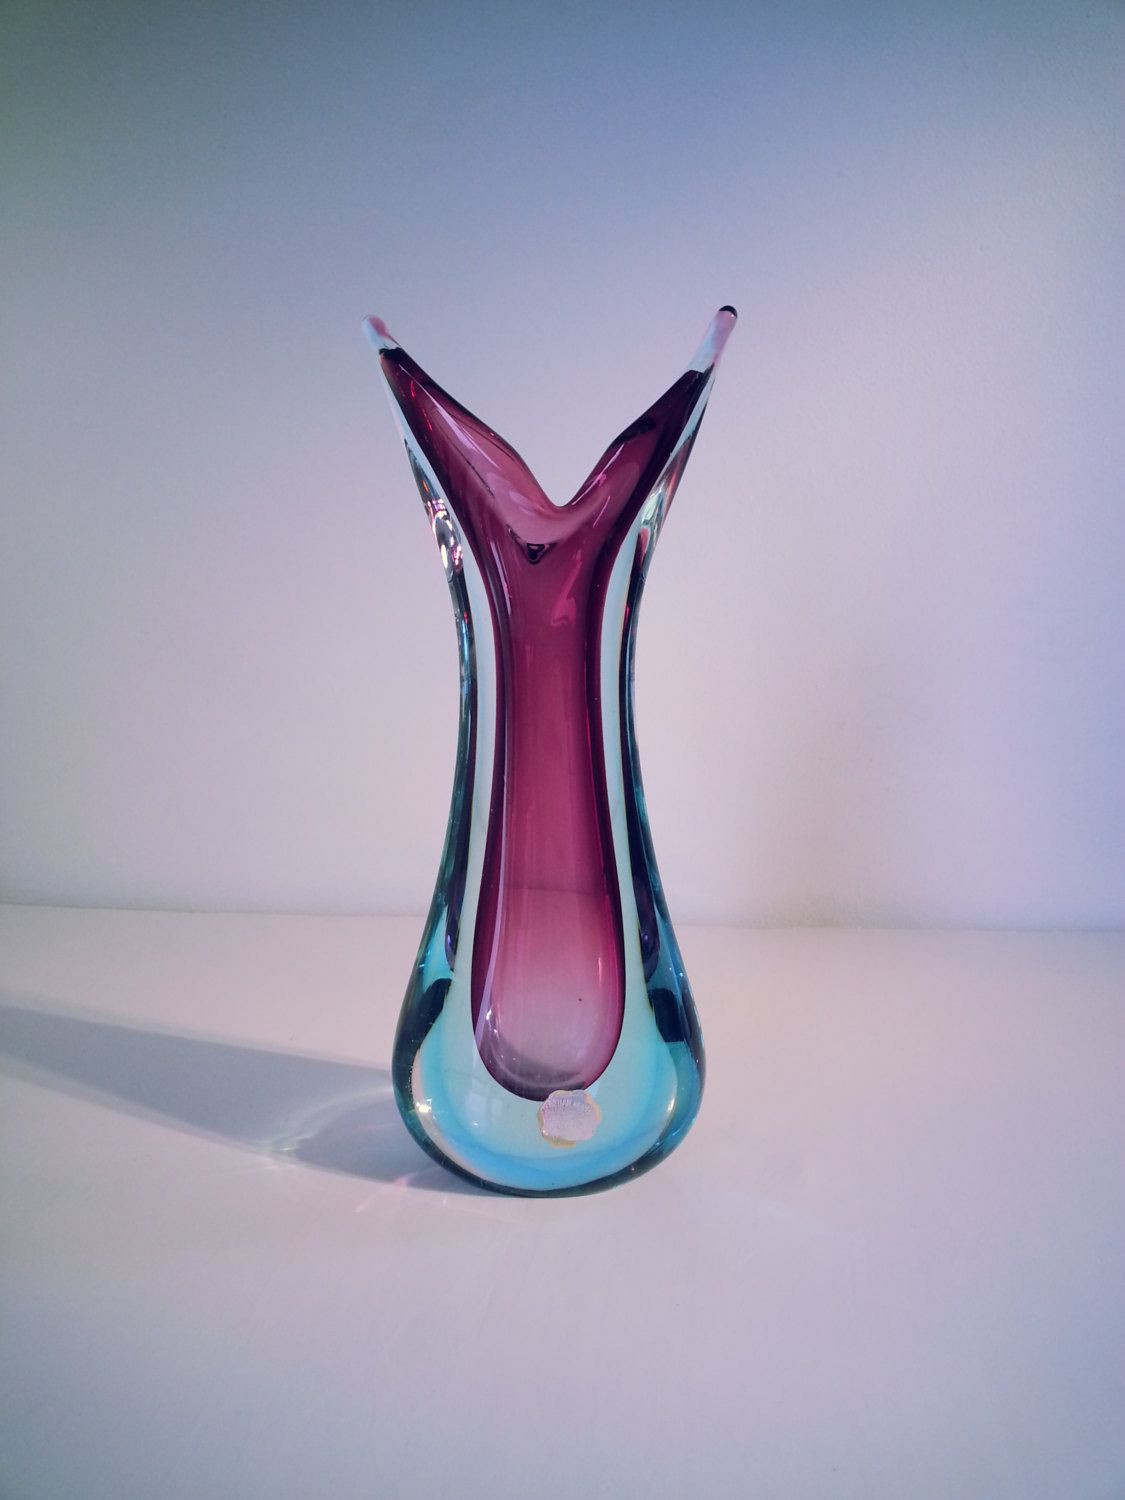 hand blown glass vase of murano sommerso genuine venetian glass 1950s 1960s purple blue within murano sommerso genuine venetian glass 1950s 1960s purple blue glass vase pulled design vase made in italy by fcollectables on etsy